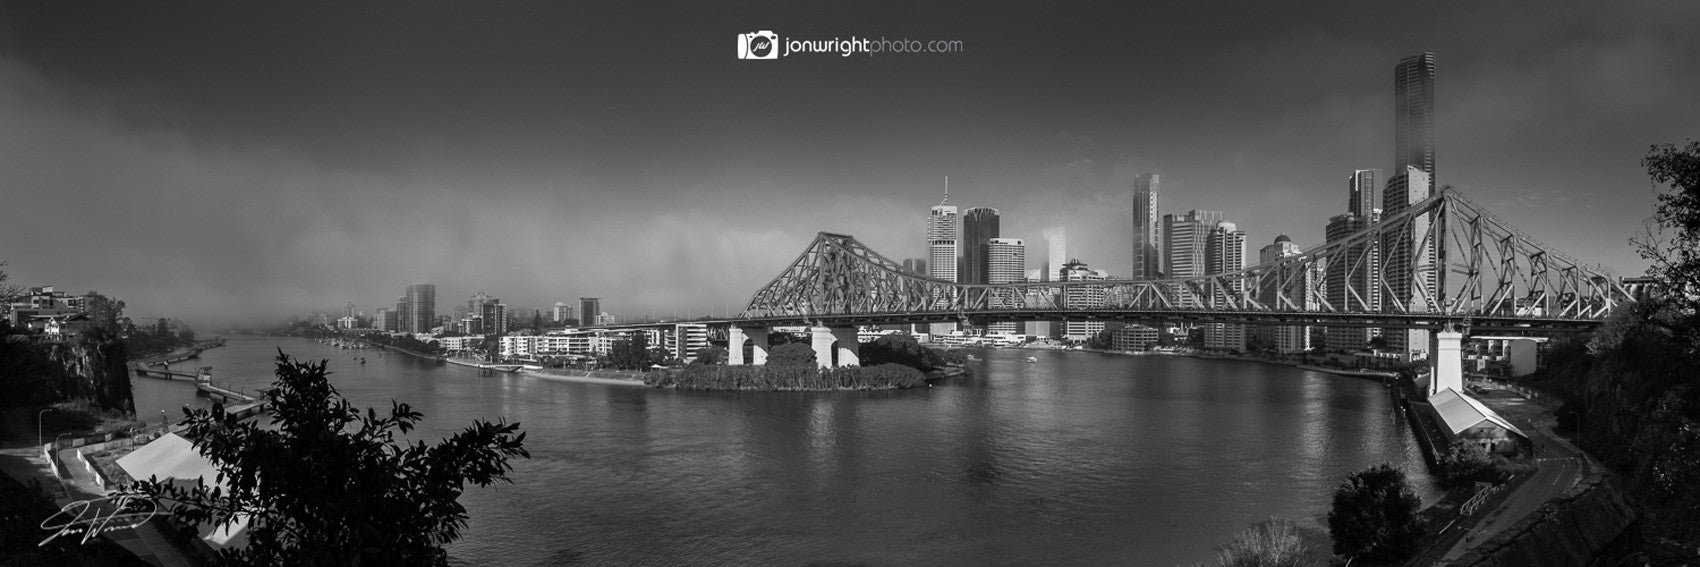 Brisbane City Fog Pano - Brisbane city, QLD Australia